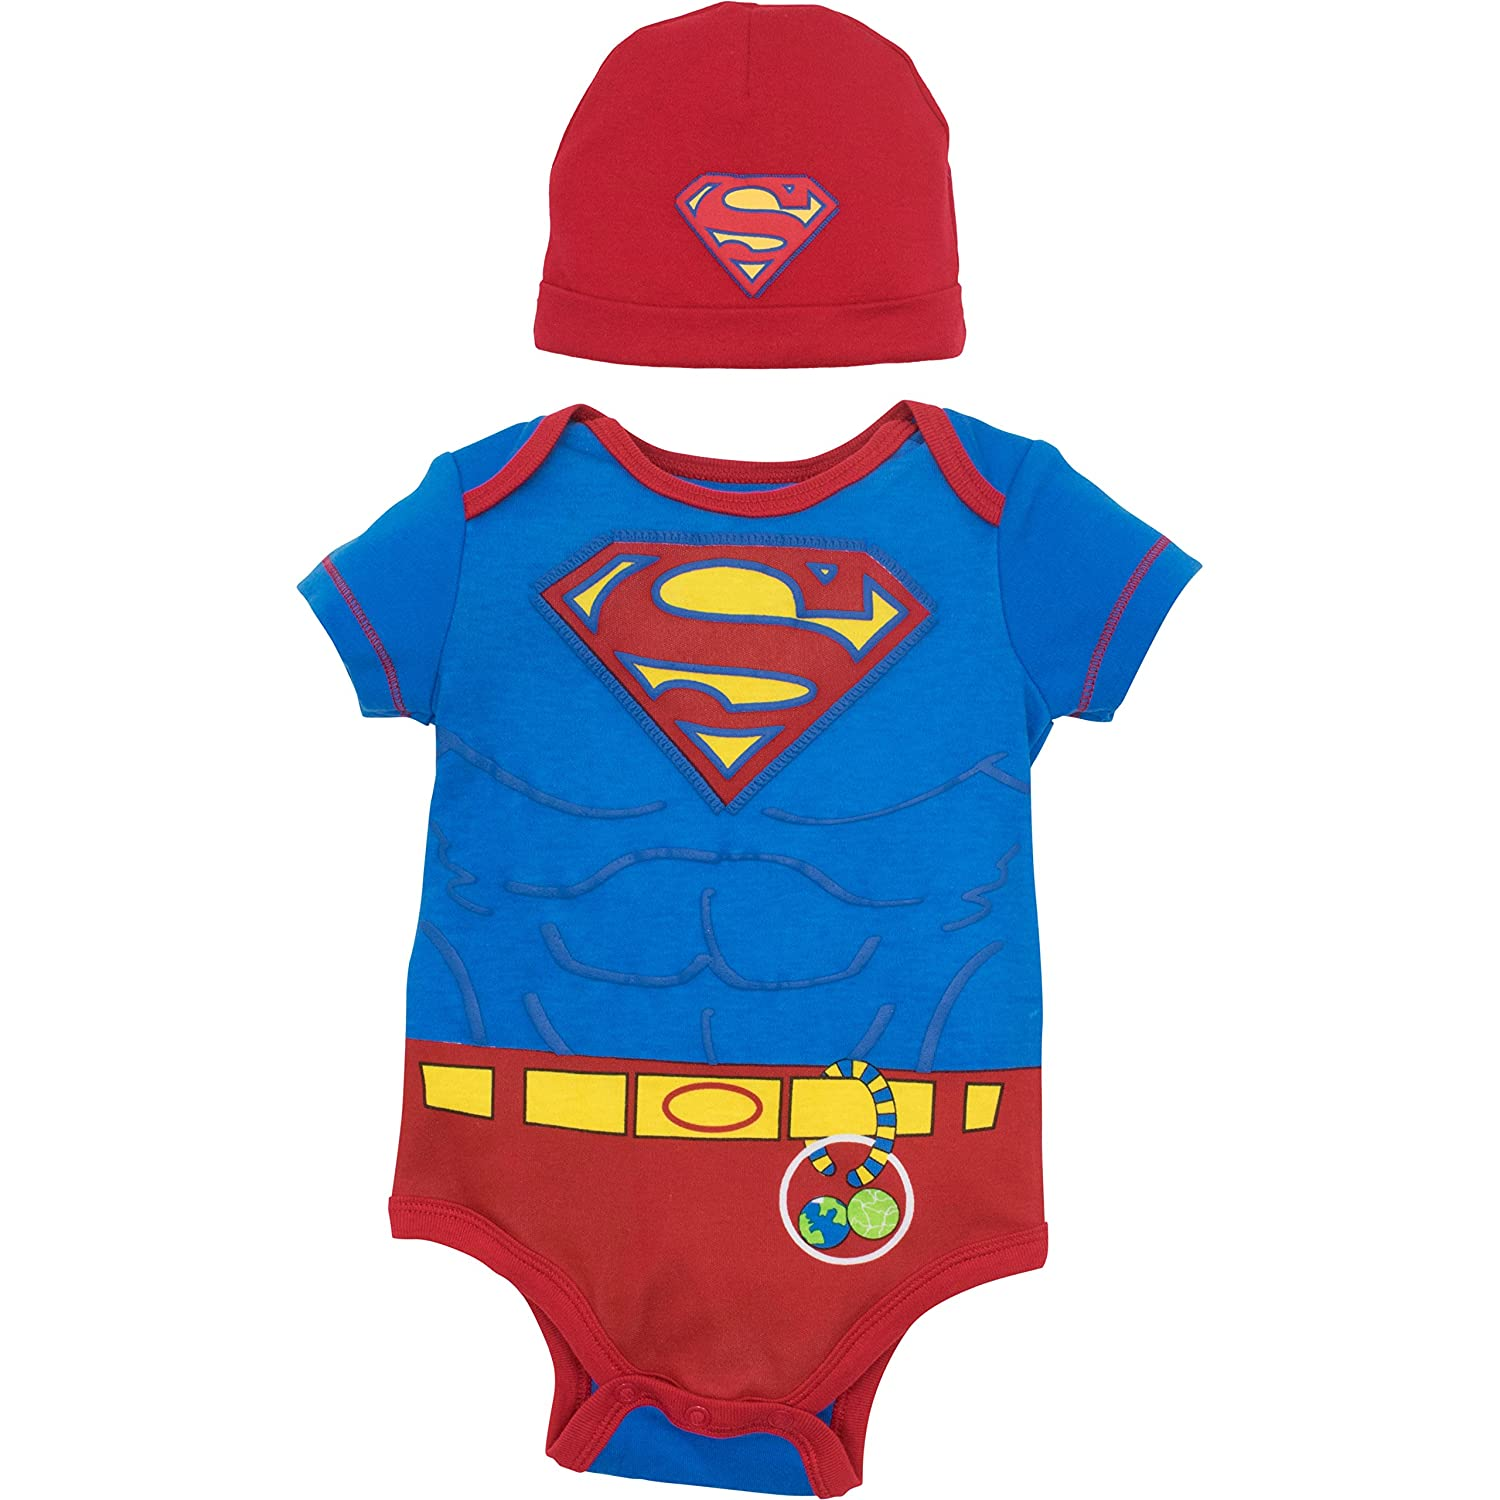 Warner Bros. Baby Boys' Batman and Superman Bodysuit and Hat Set Grey and Yellow (6-9 Months)